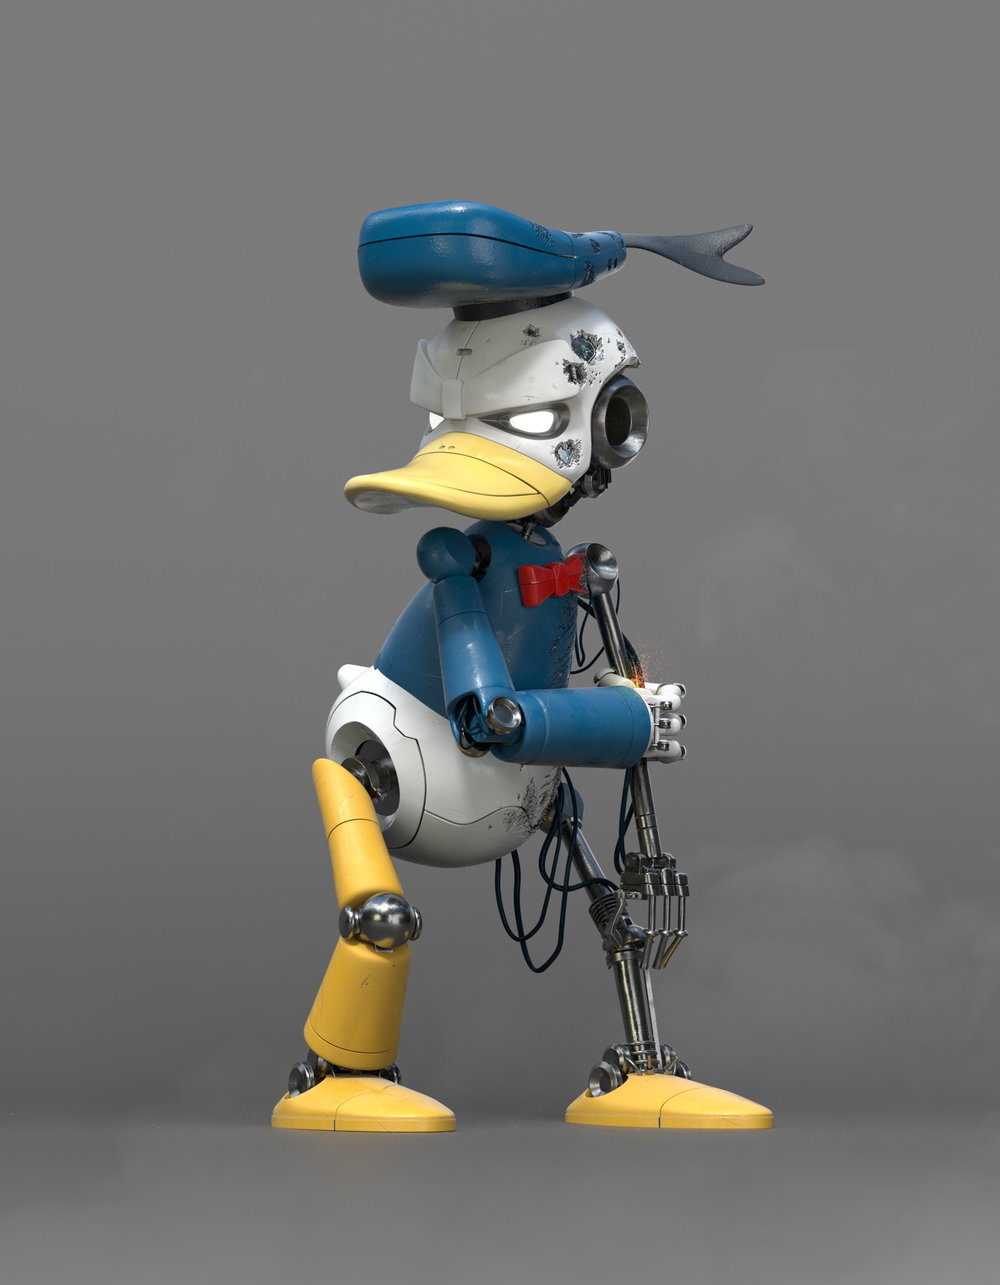 donald-duck-reimagined-as-a-sinister-looking-cyborg